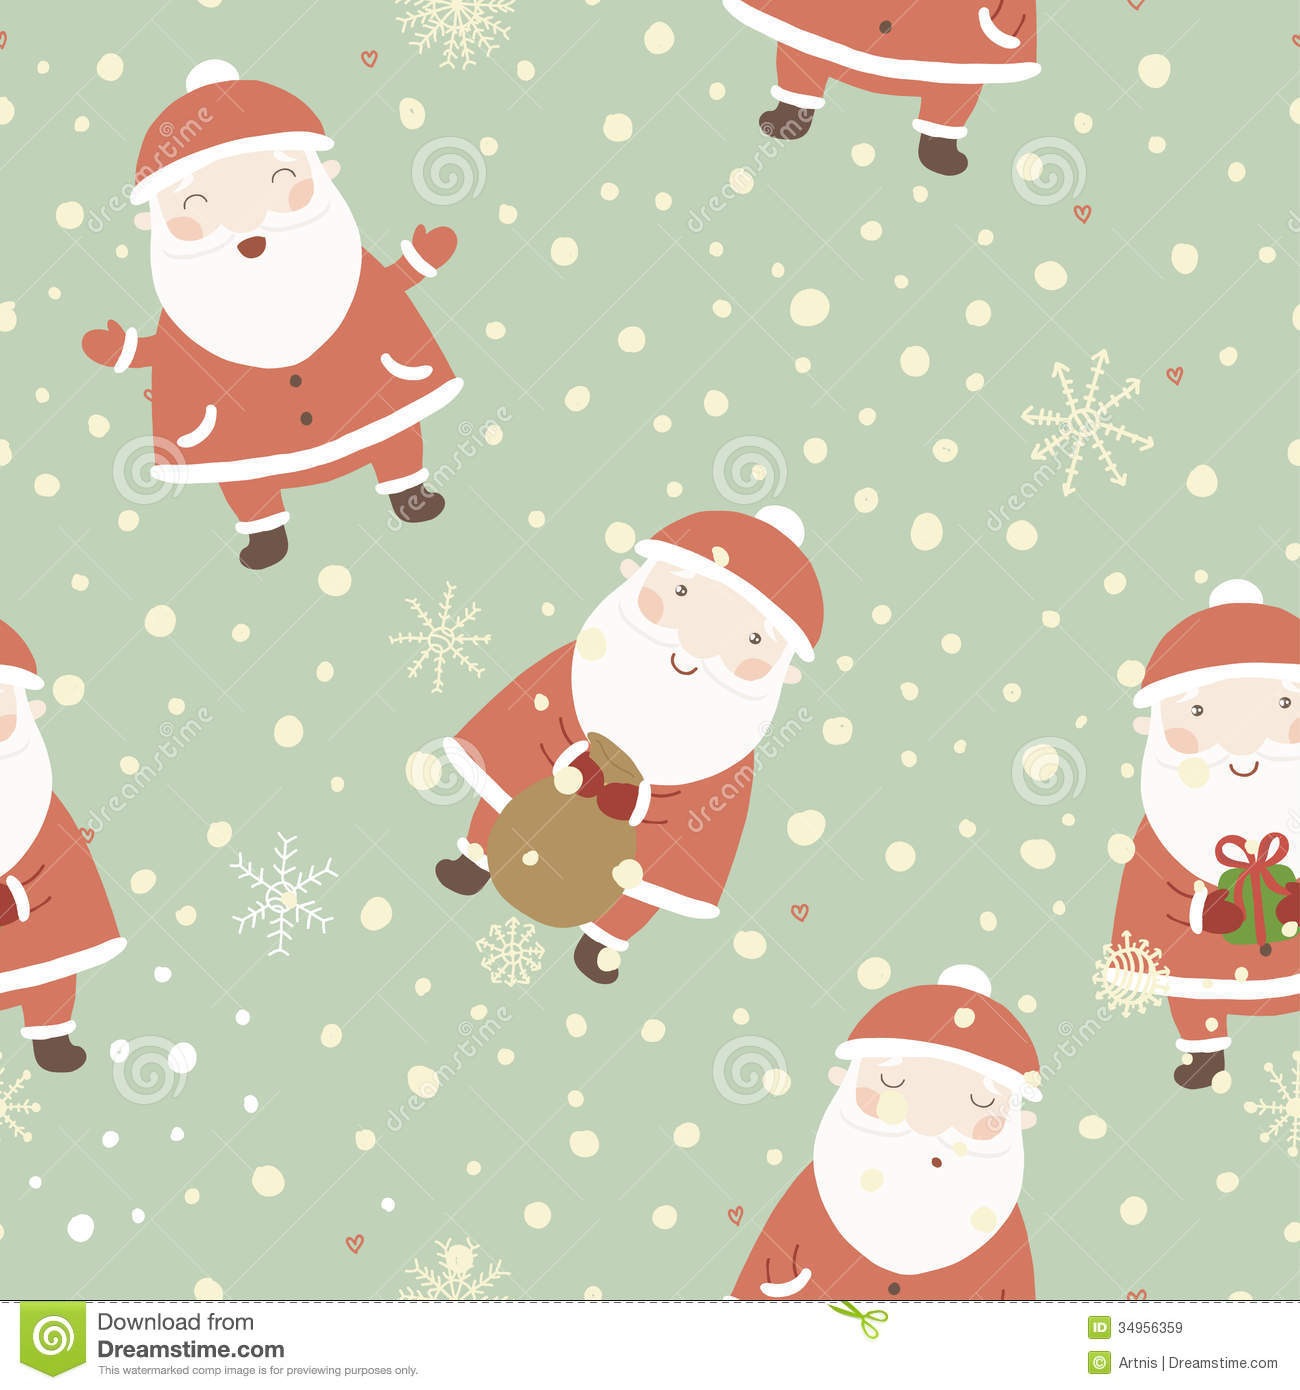 Cute Wallpapers Drawing Of Puppy Tumbler Christmas Background With Cute Santa Stock Vector